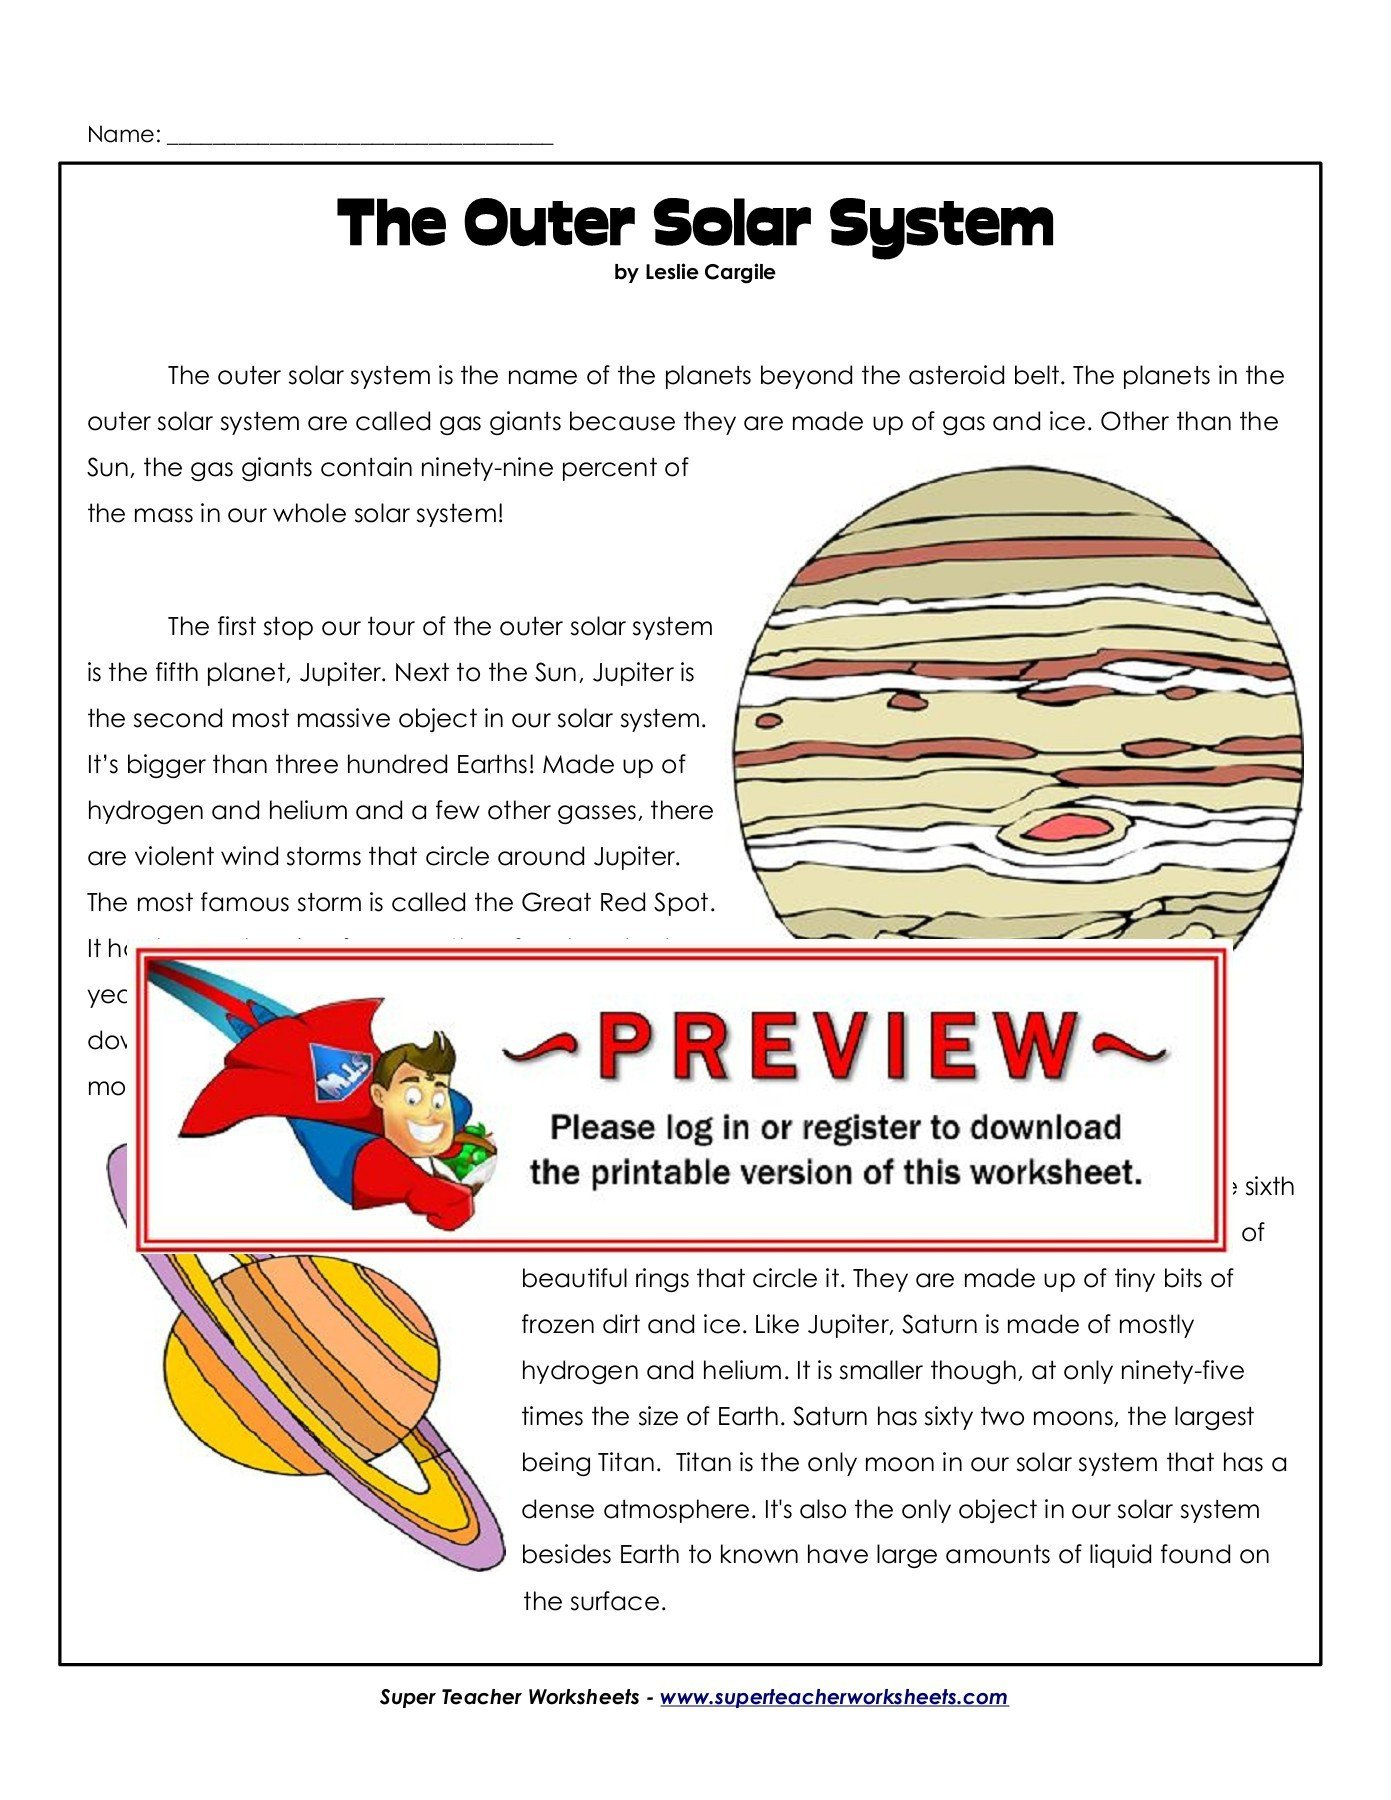 Super Teachers Worksheets Login the Outer solar System Super Teacher Worksheets